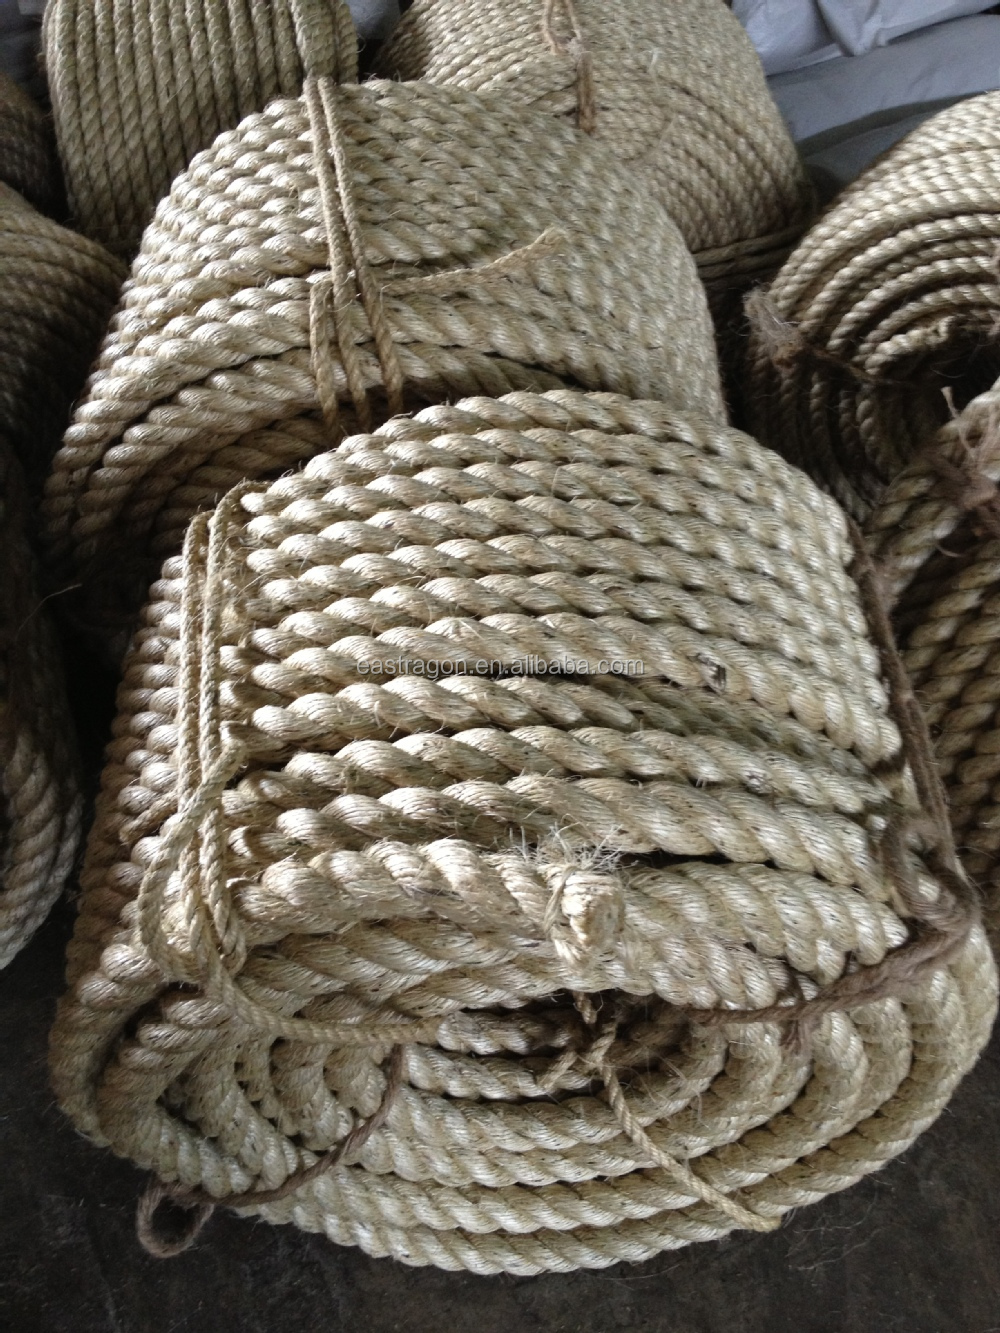 Manila Twisted Rope Sisal Twisted Rope Buy Sisal Twisted